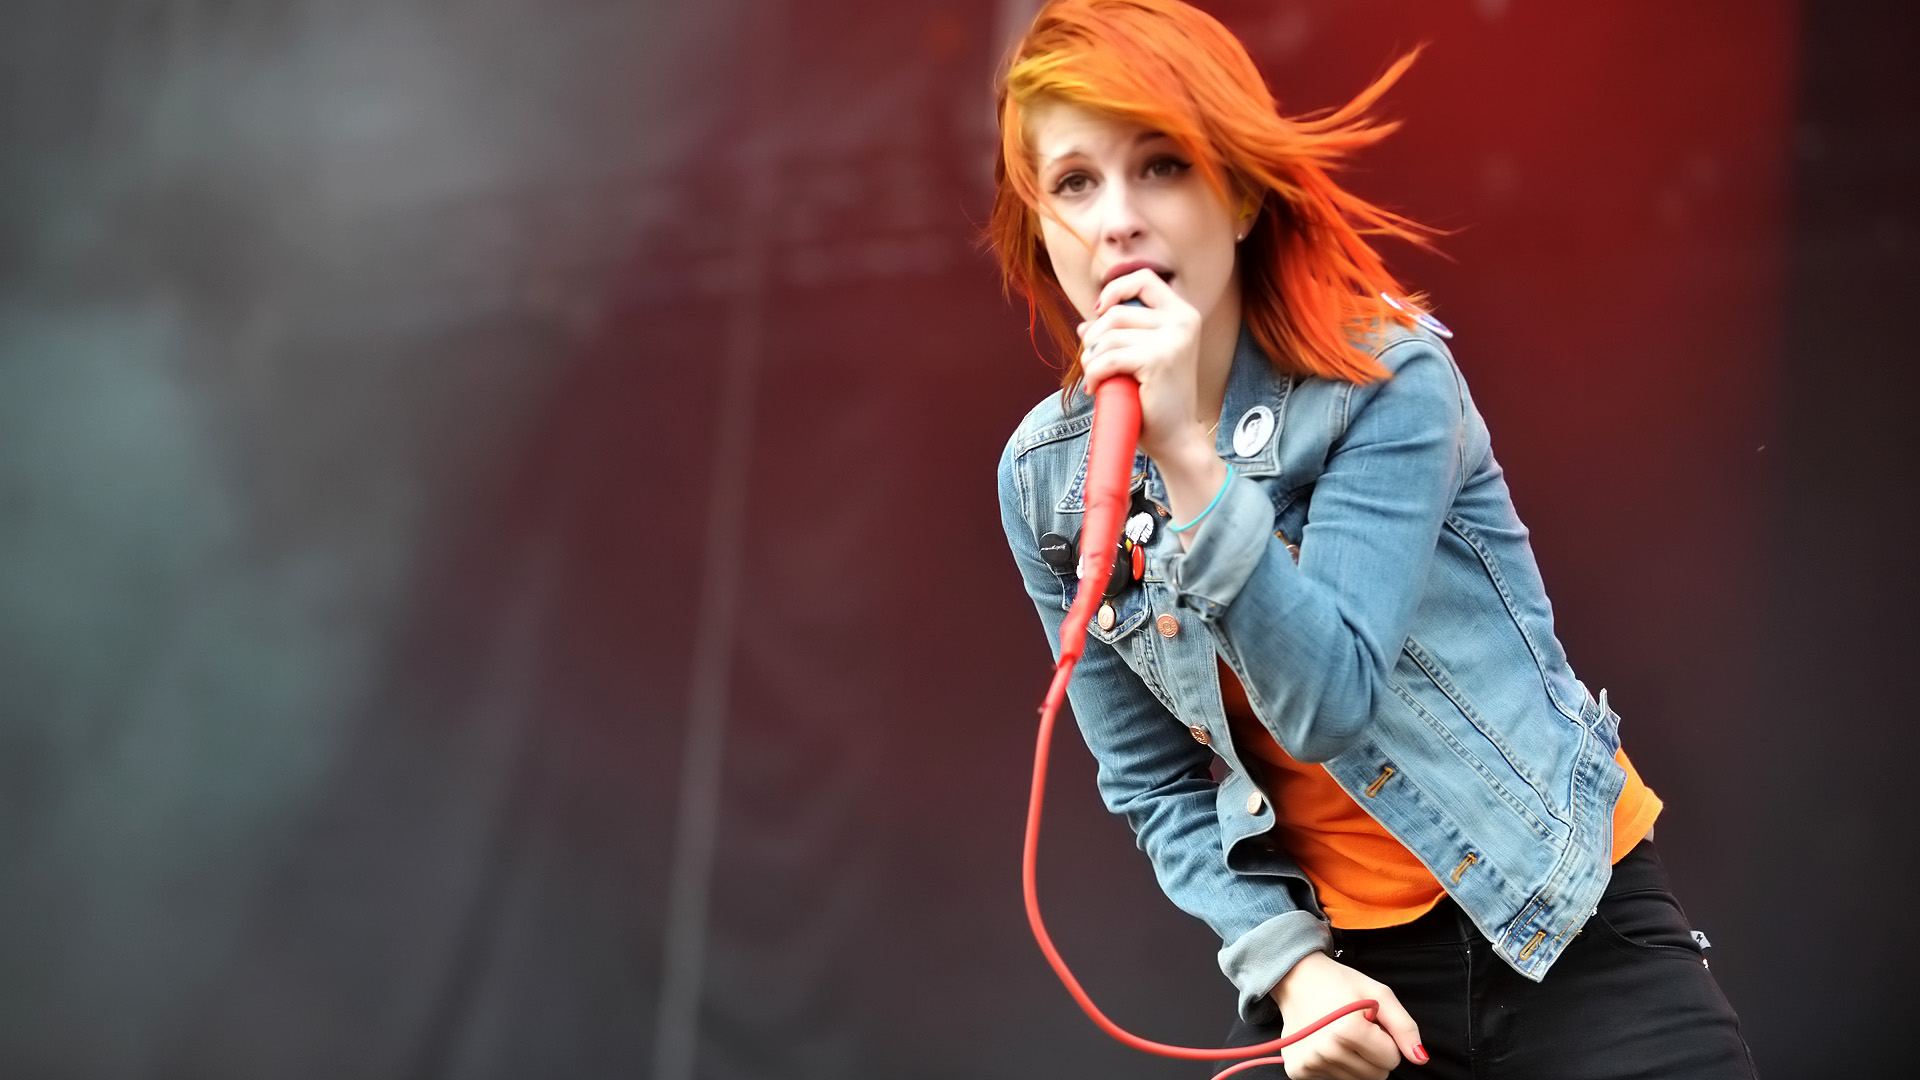 ... hayley-williams-wallpaper-rapper ...